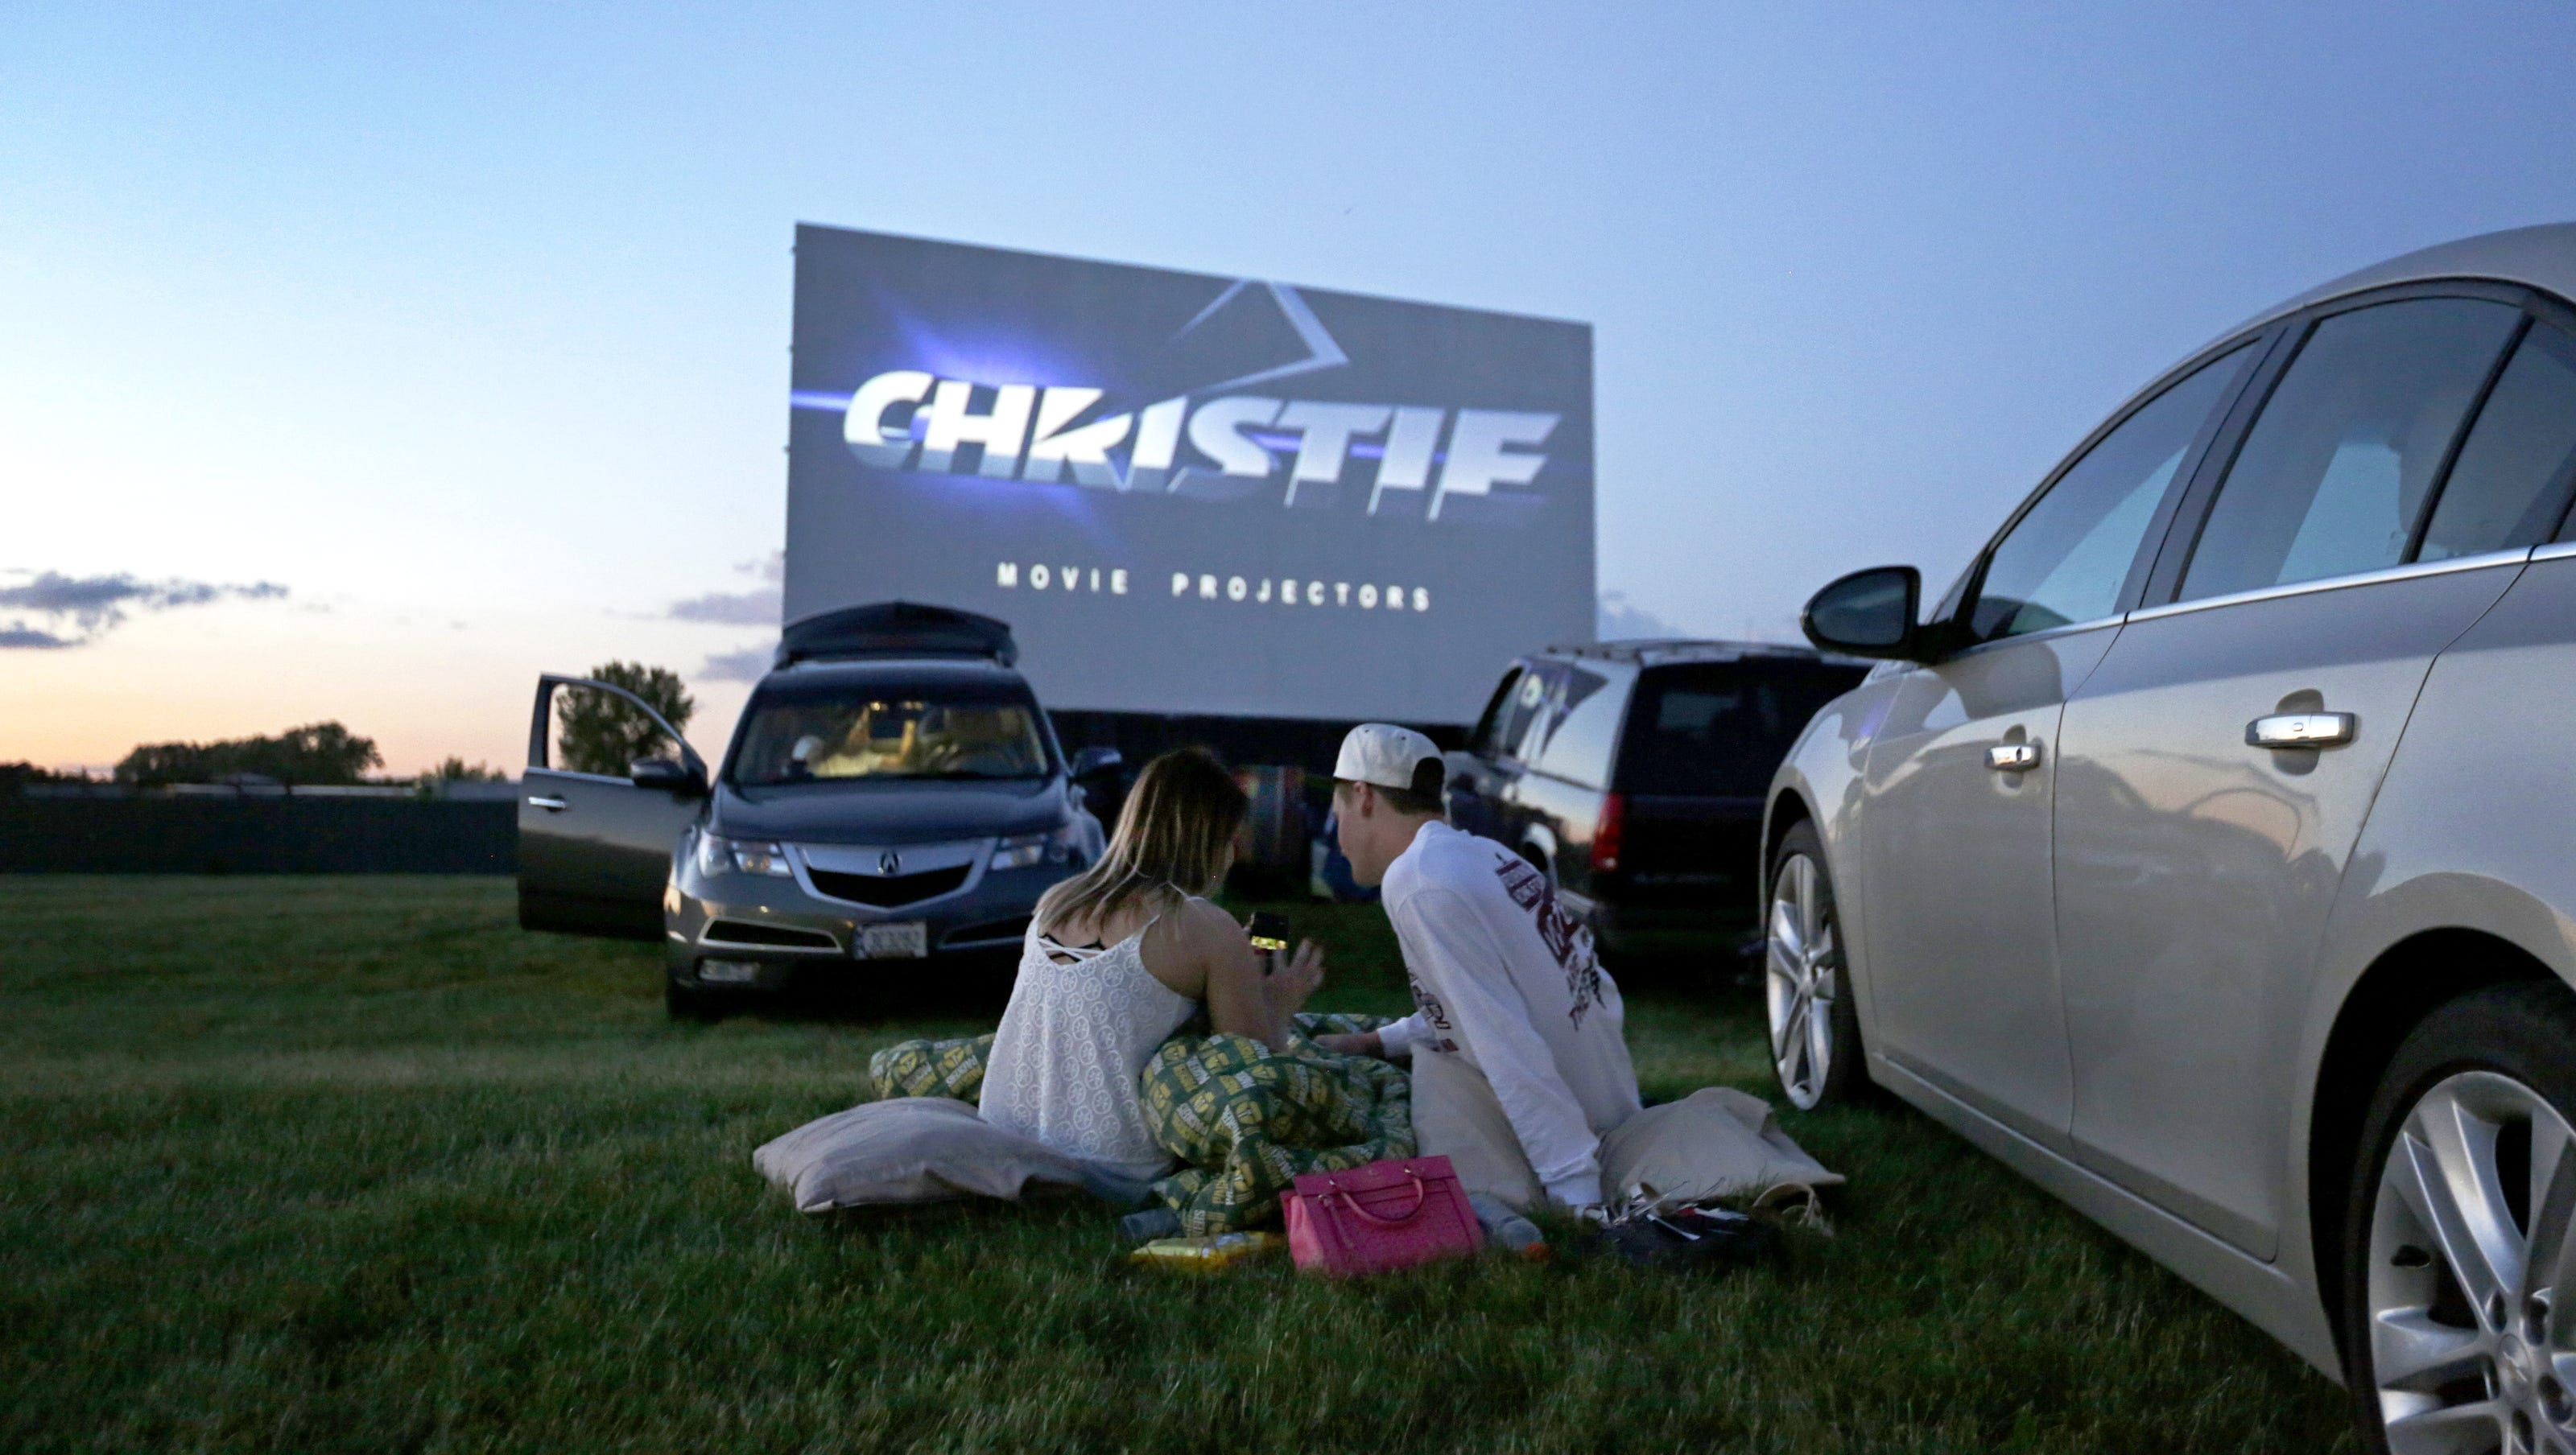 Drive in theaters all about the experience